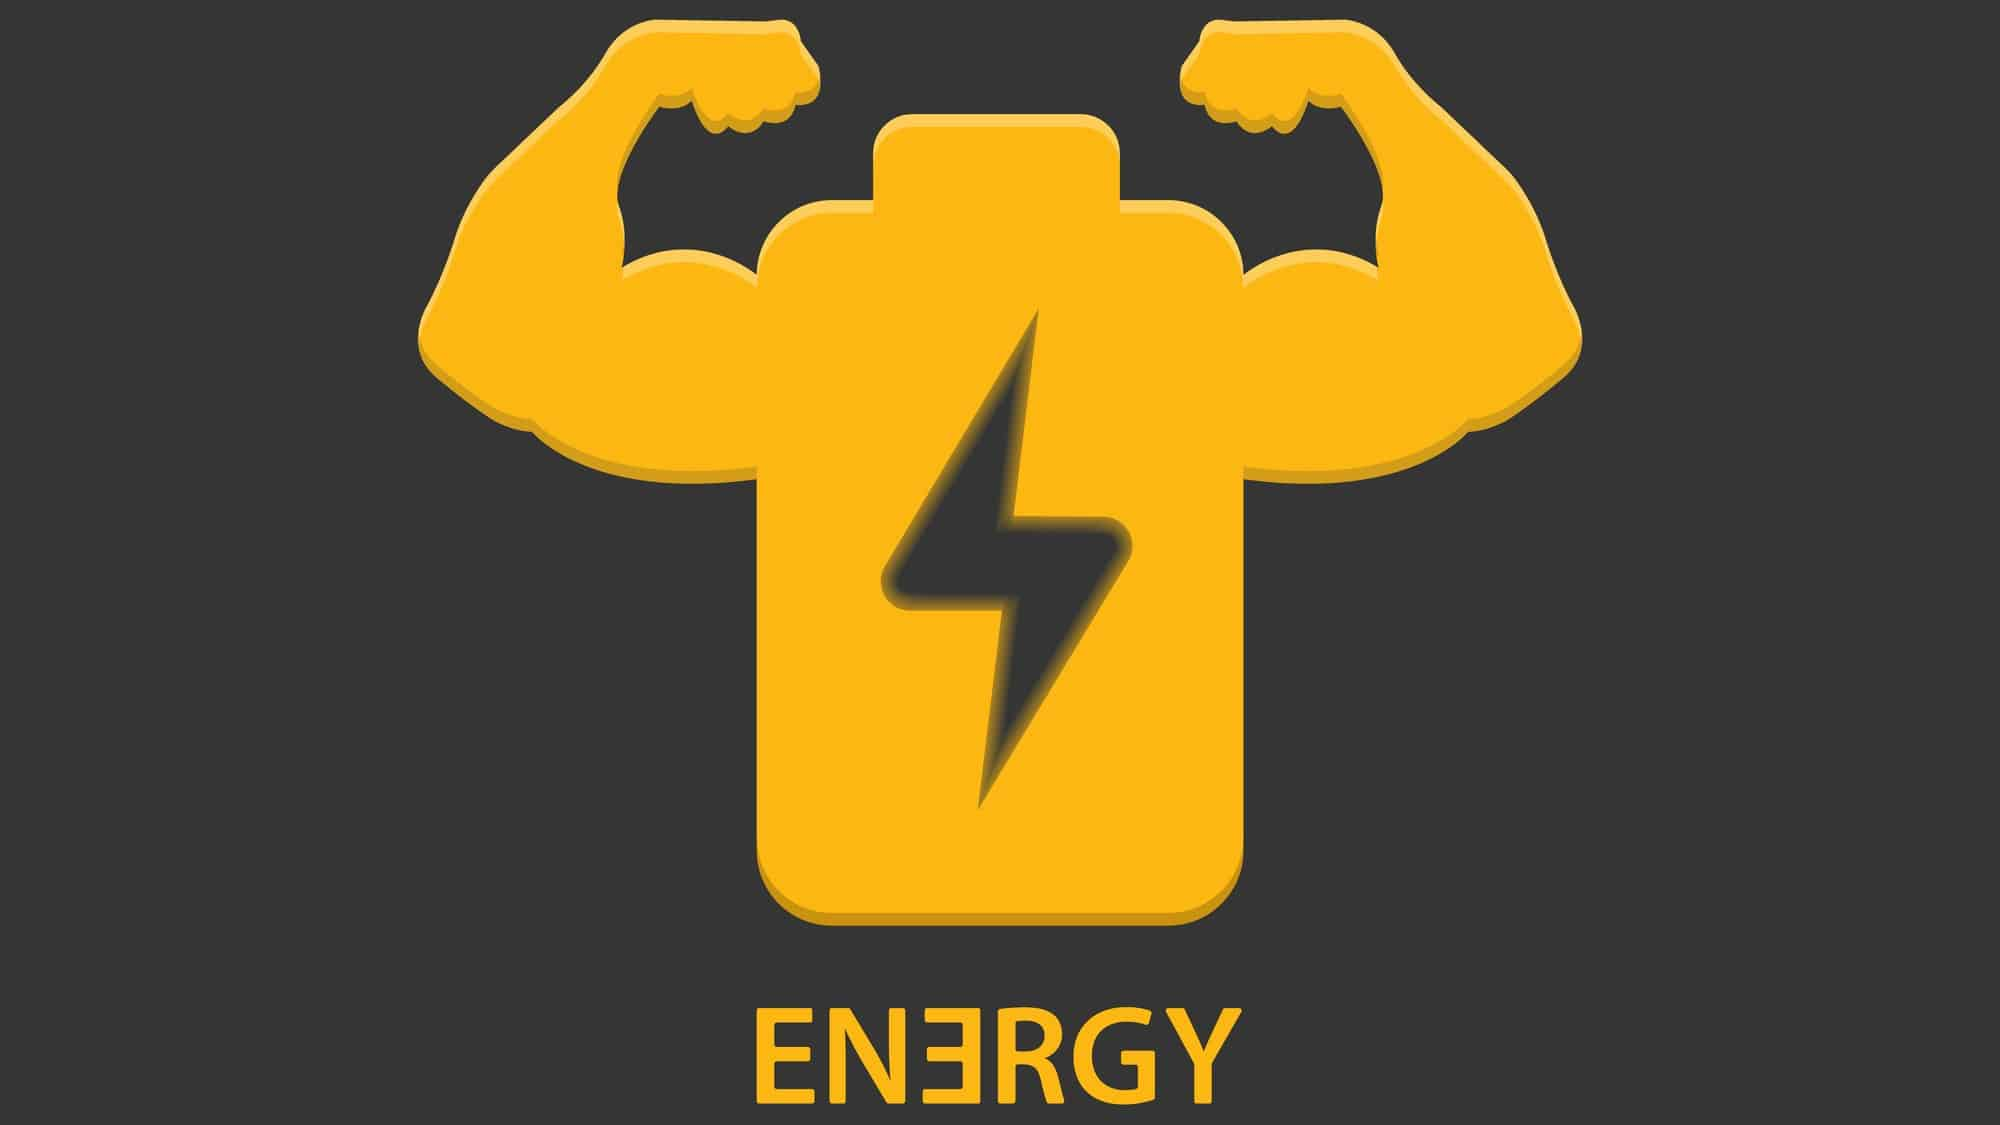 ASX lithium shares A stylised clean energy battery flexes its muscles, indicating a strong lift in share price for ASX energy companies